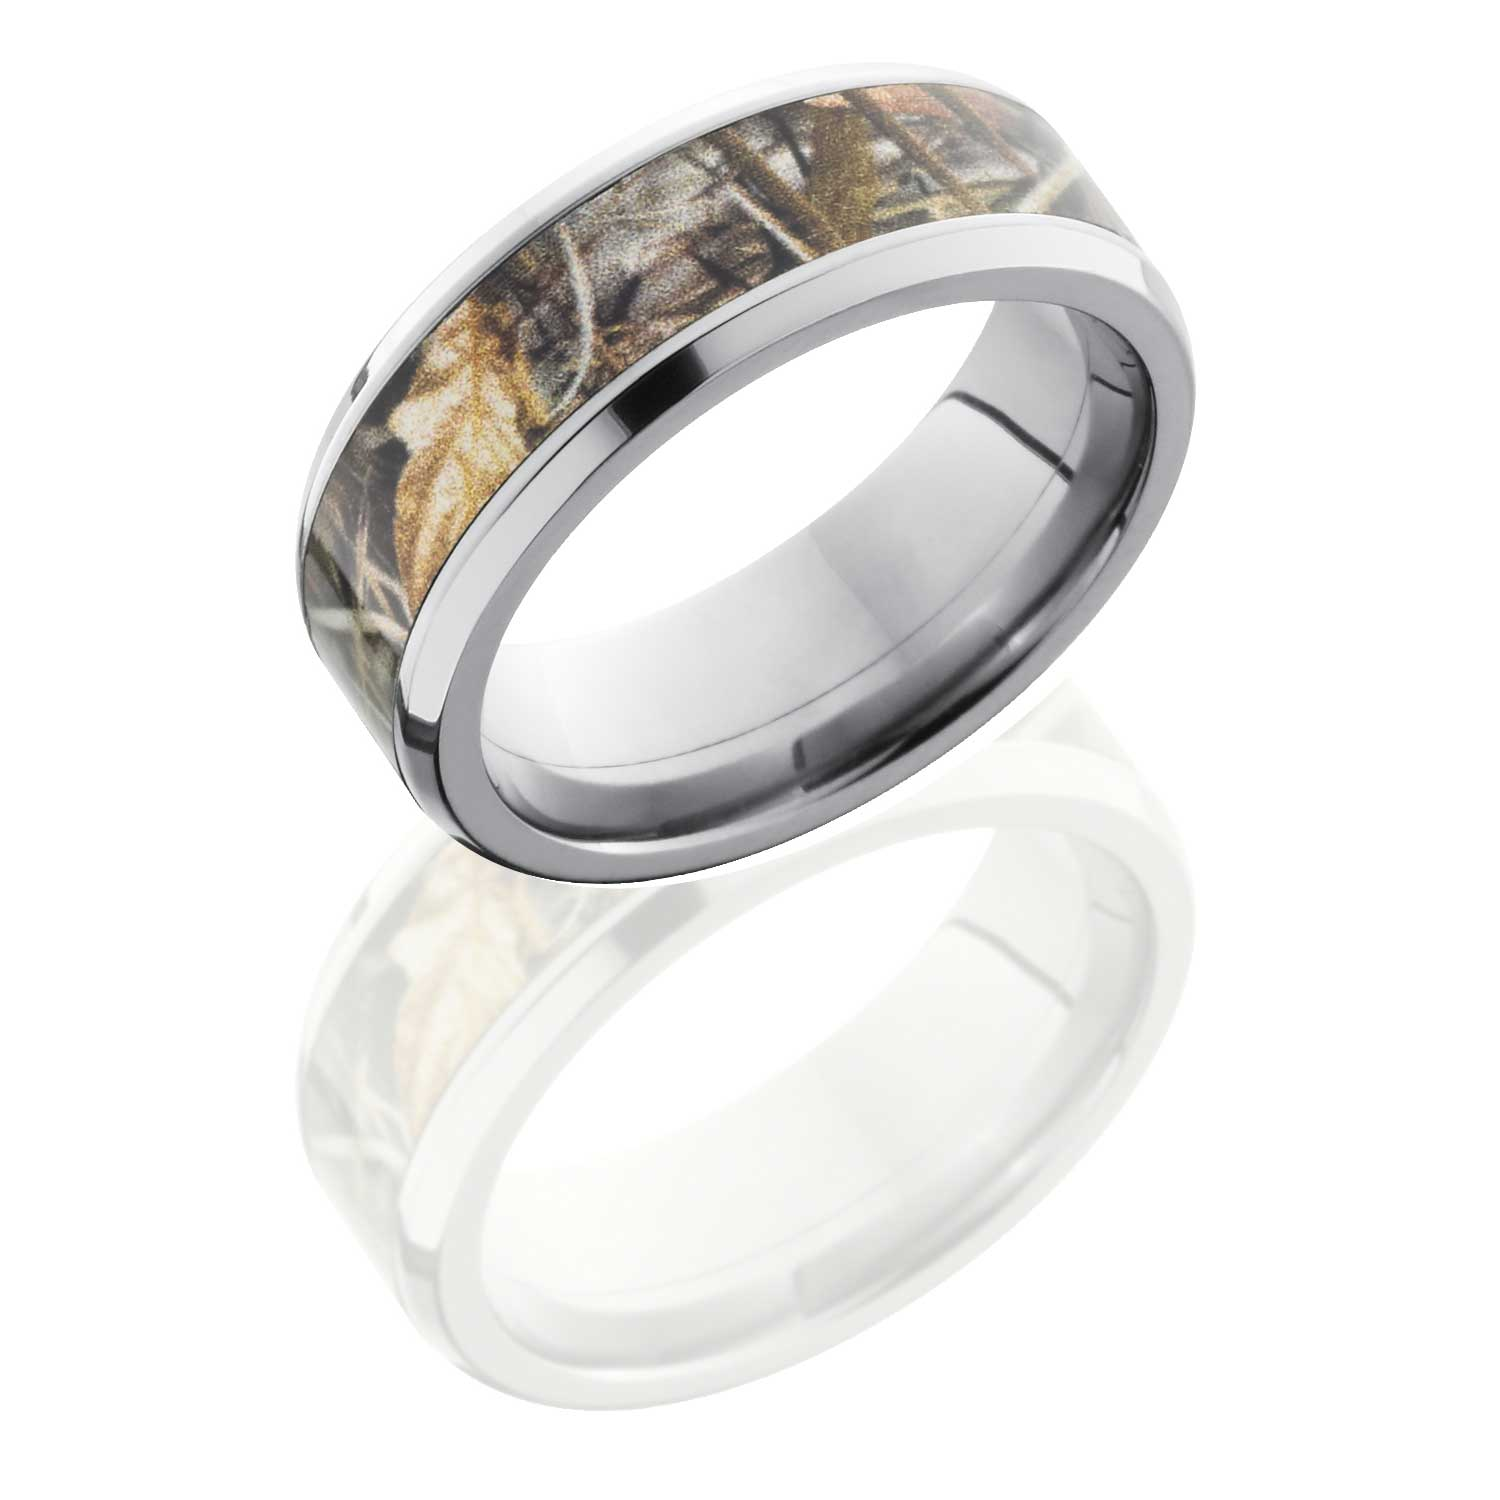 camo men wedding rings mens camo wedding bands Camo men wedding rings Titanium Band With Realtree Max4 Camo Inlay Lb Lb 00